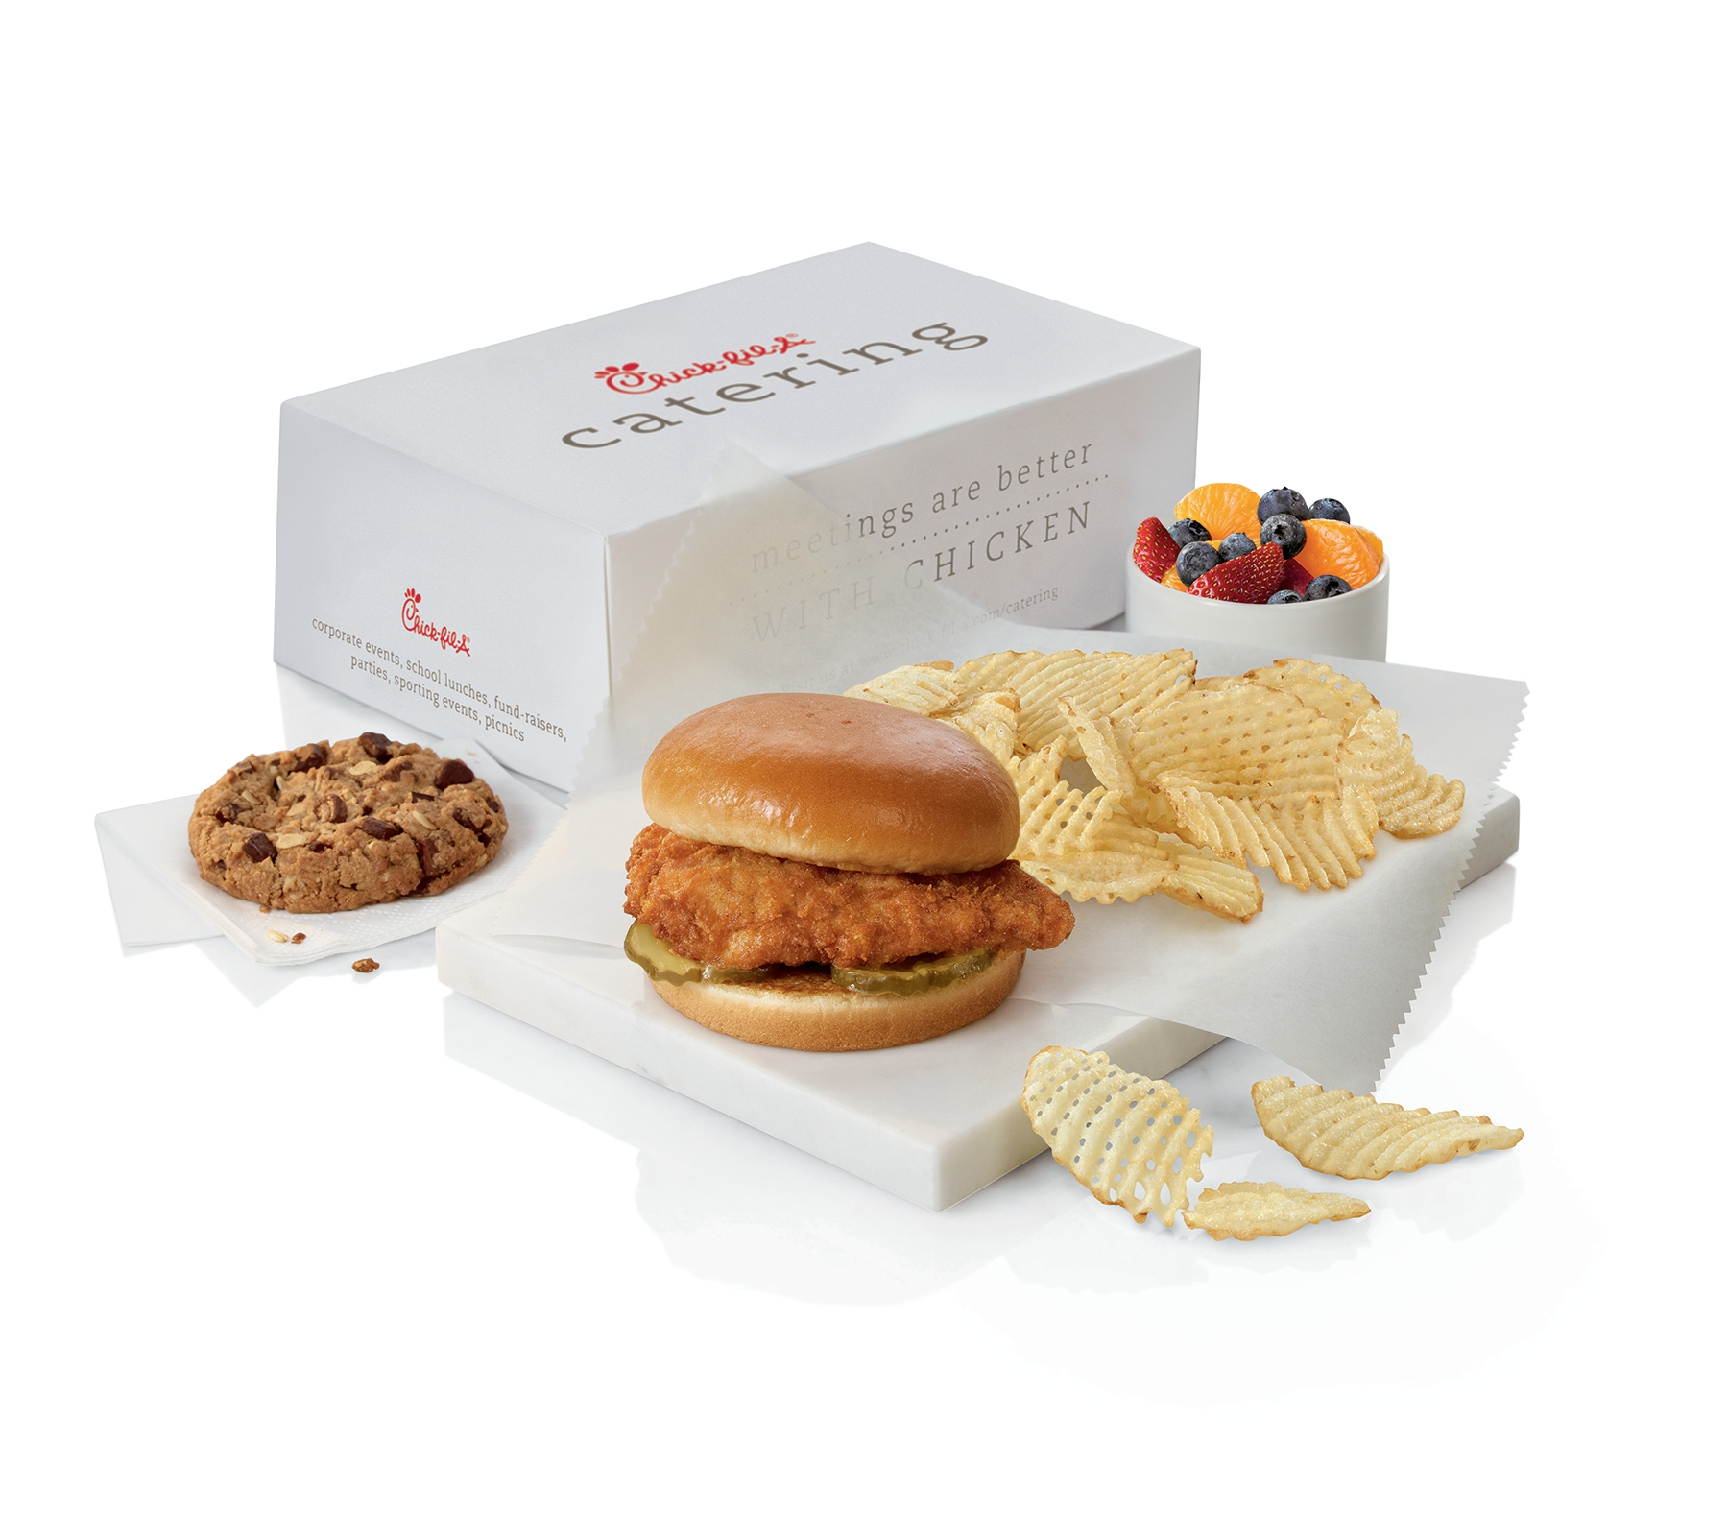 Boxed Meal Image.jpg